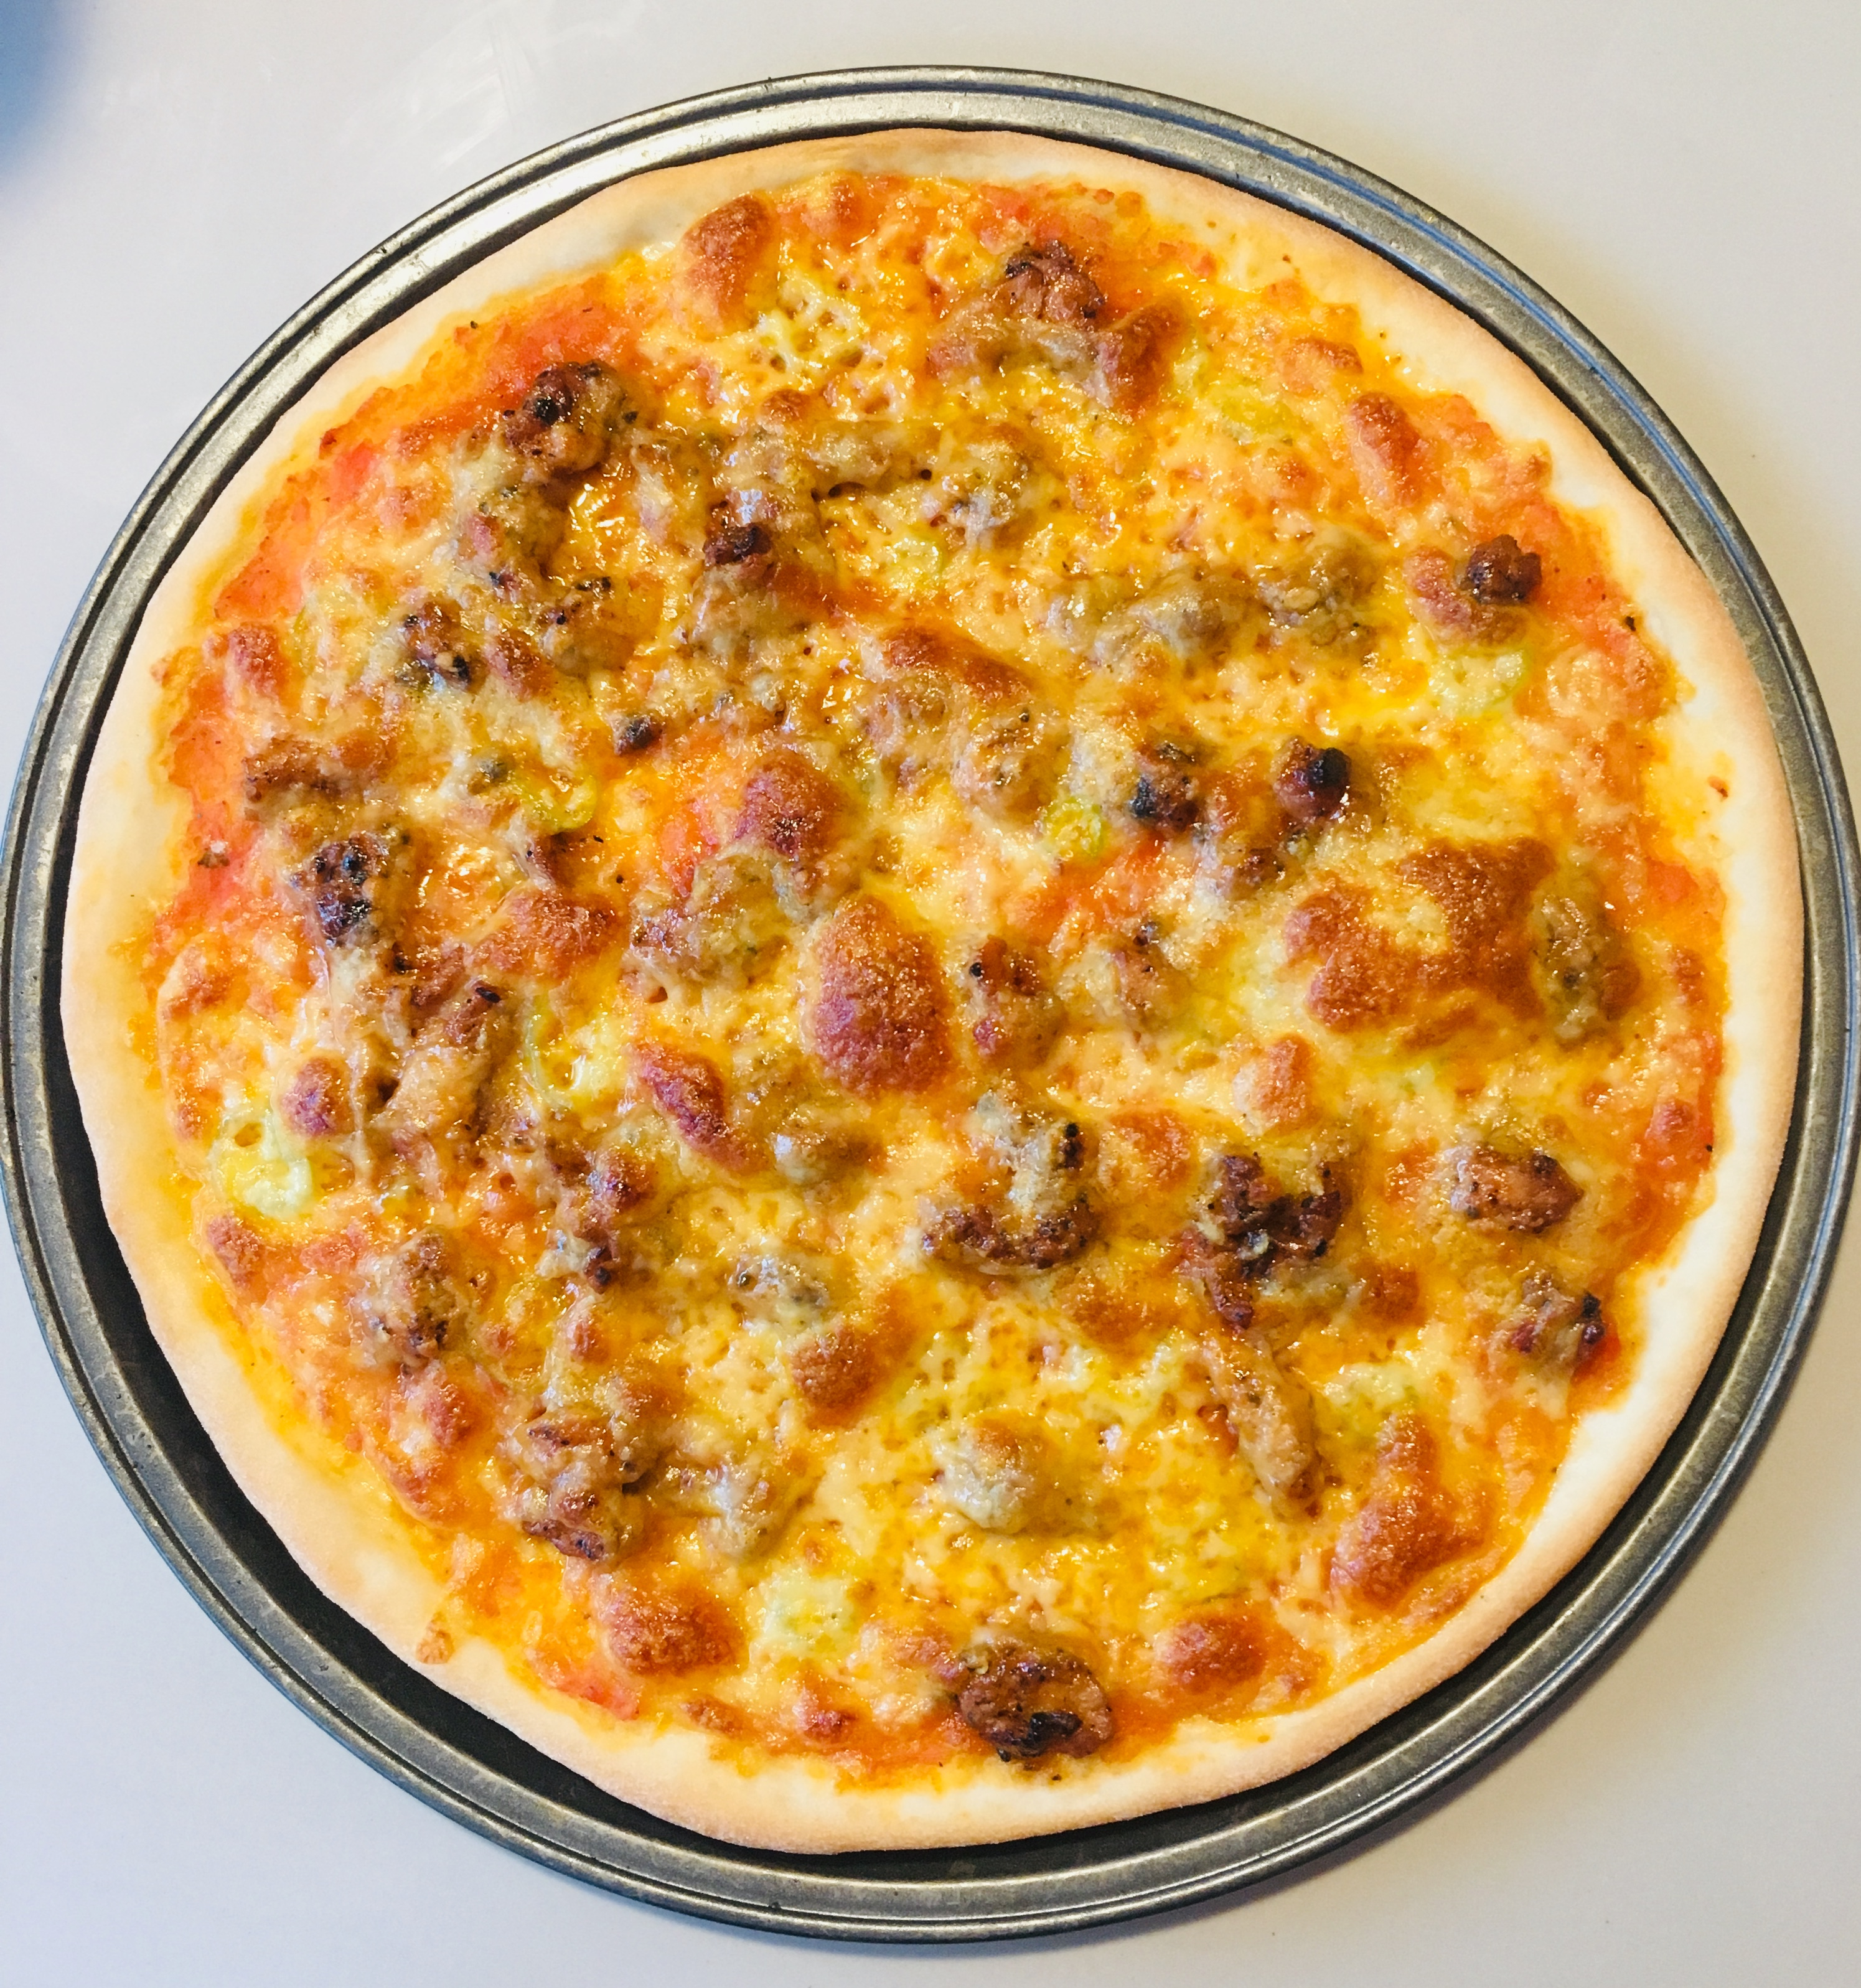 Best Pizza Delivery Restaurants In Koh Samui